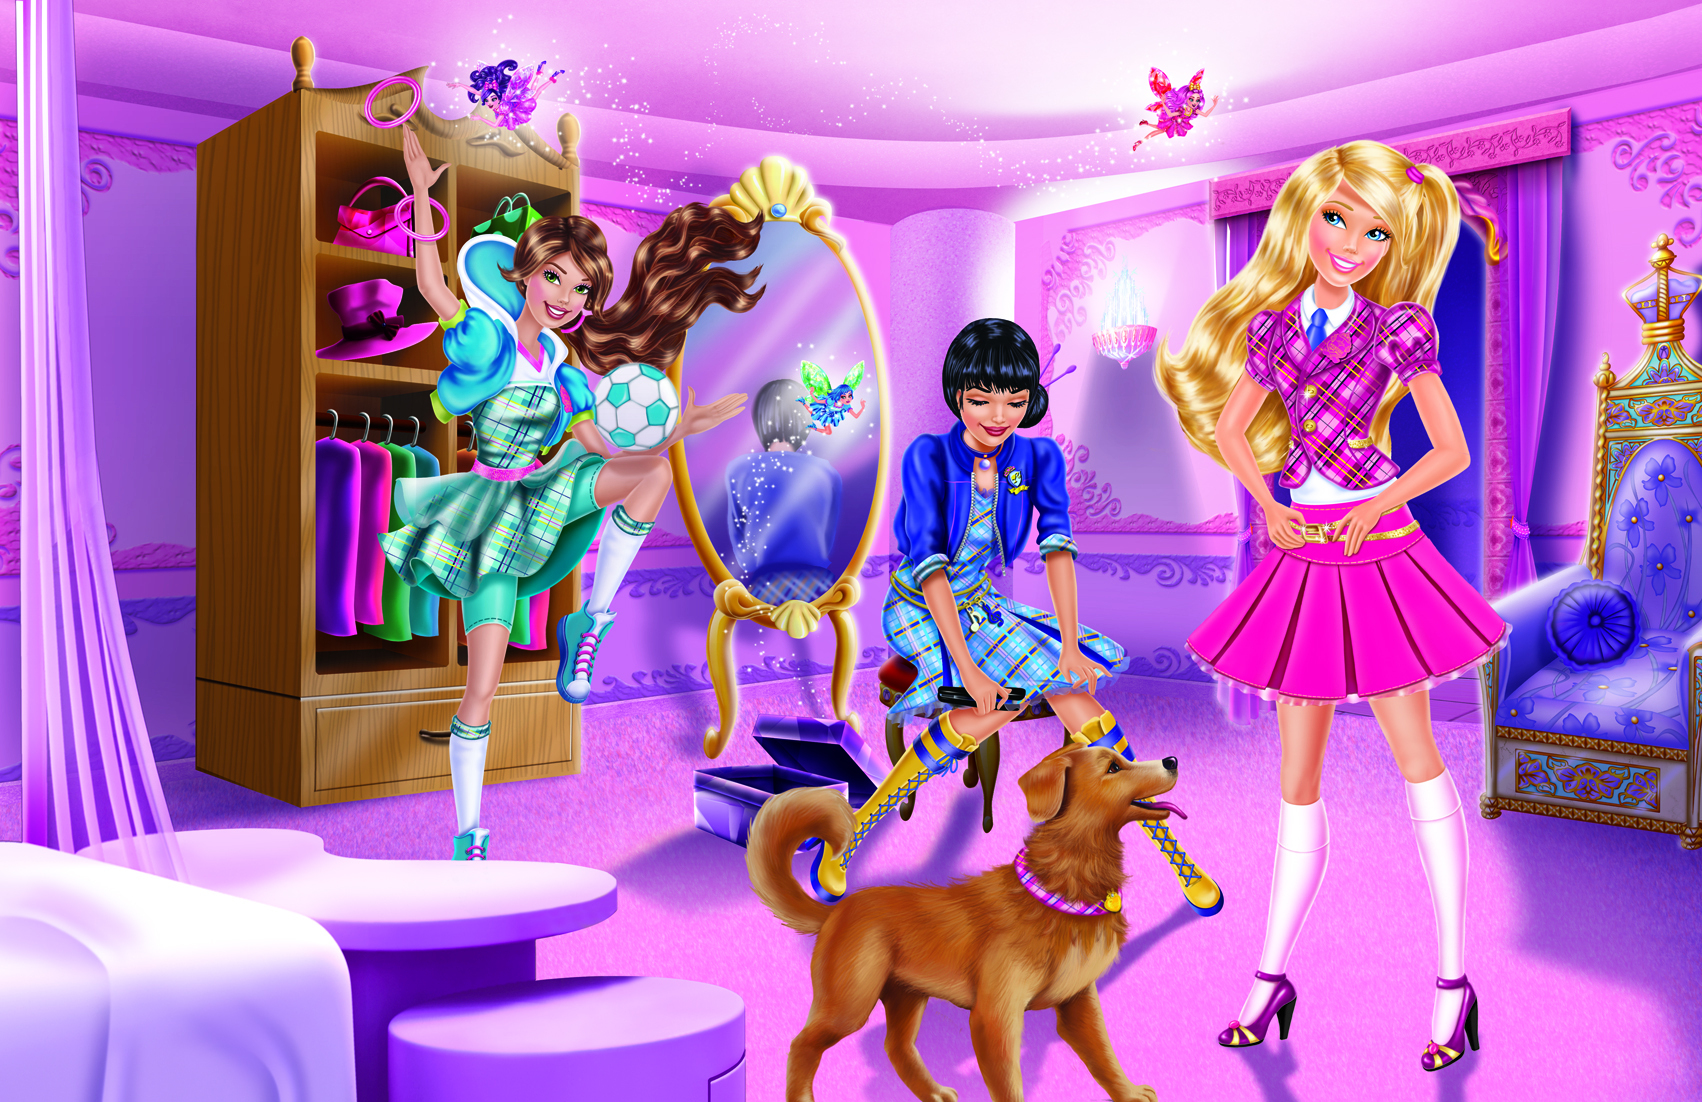 barbie princess charm school new - barbie-movies photo